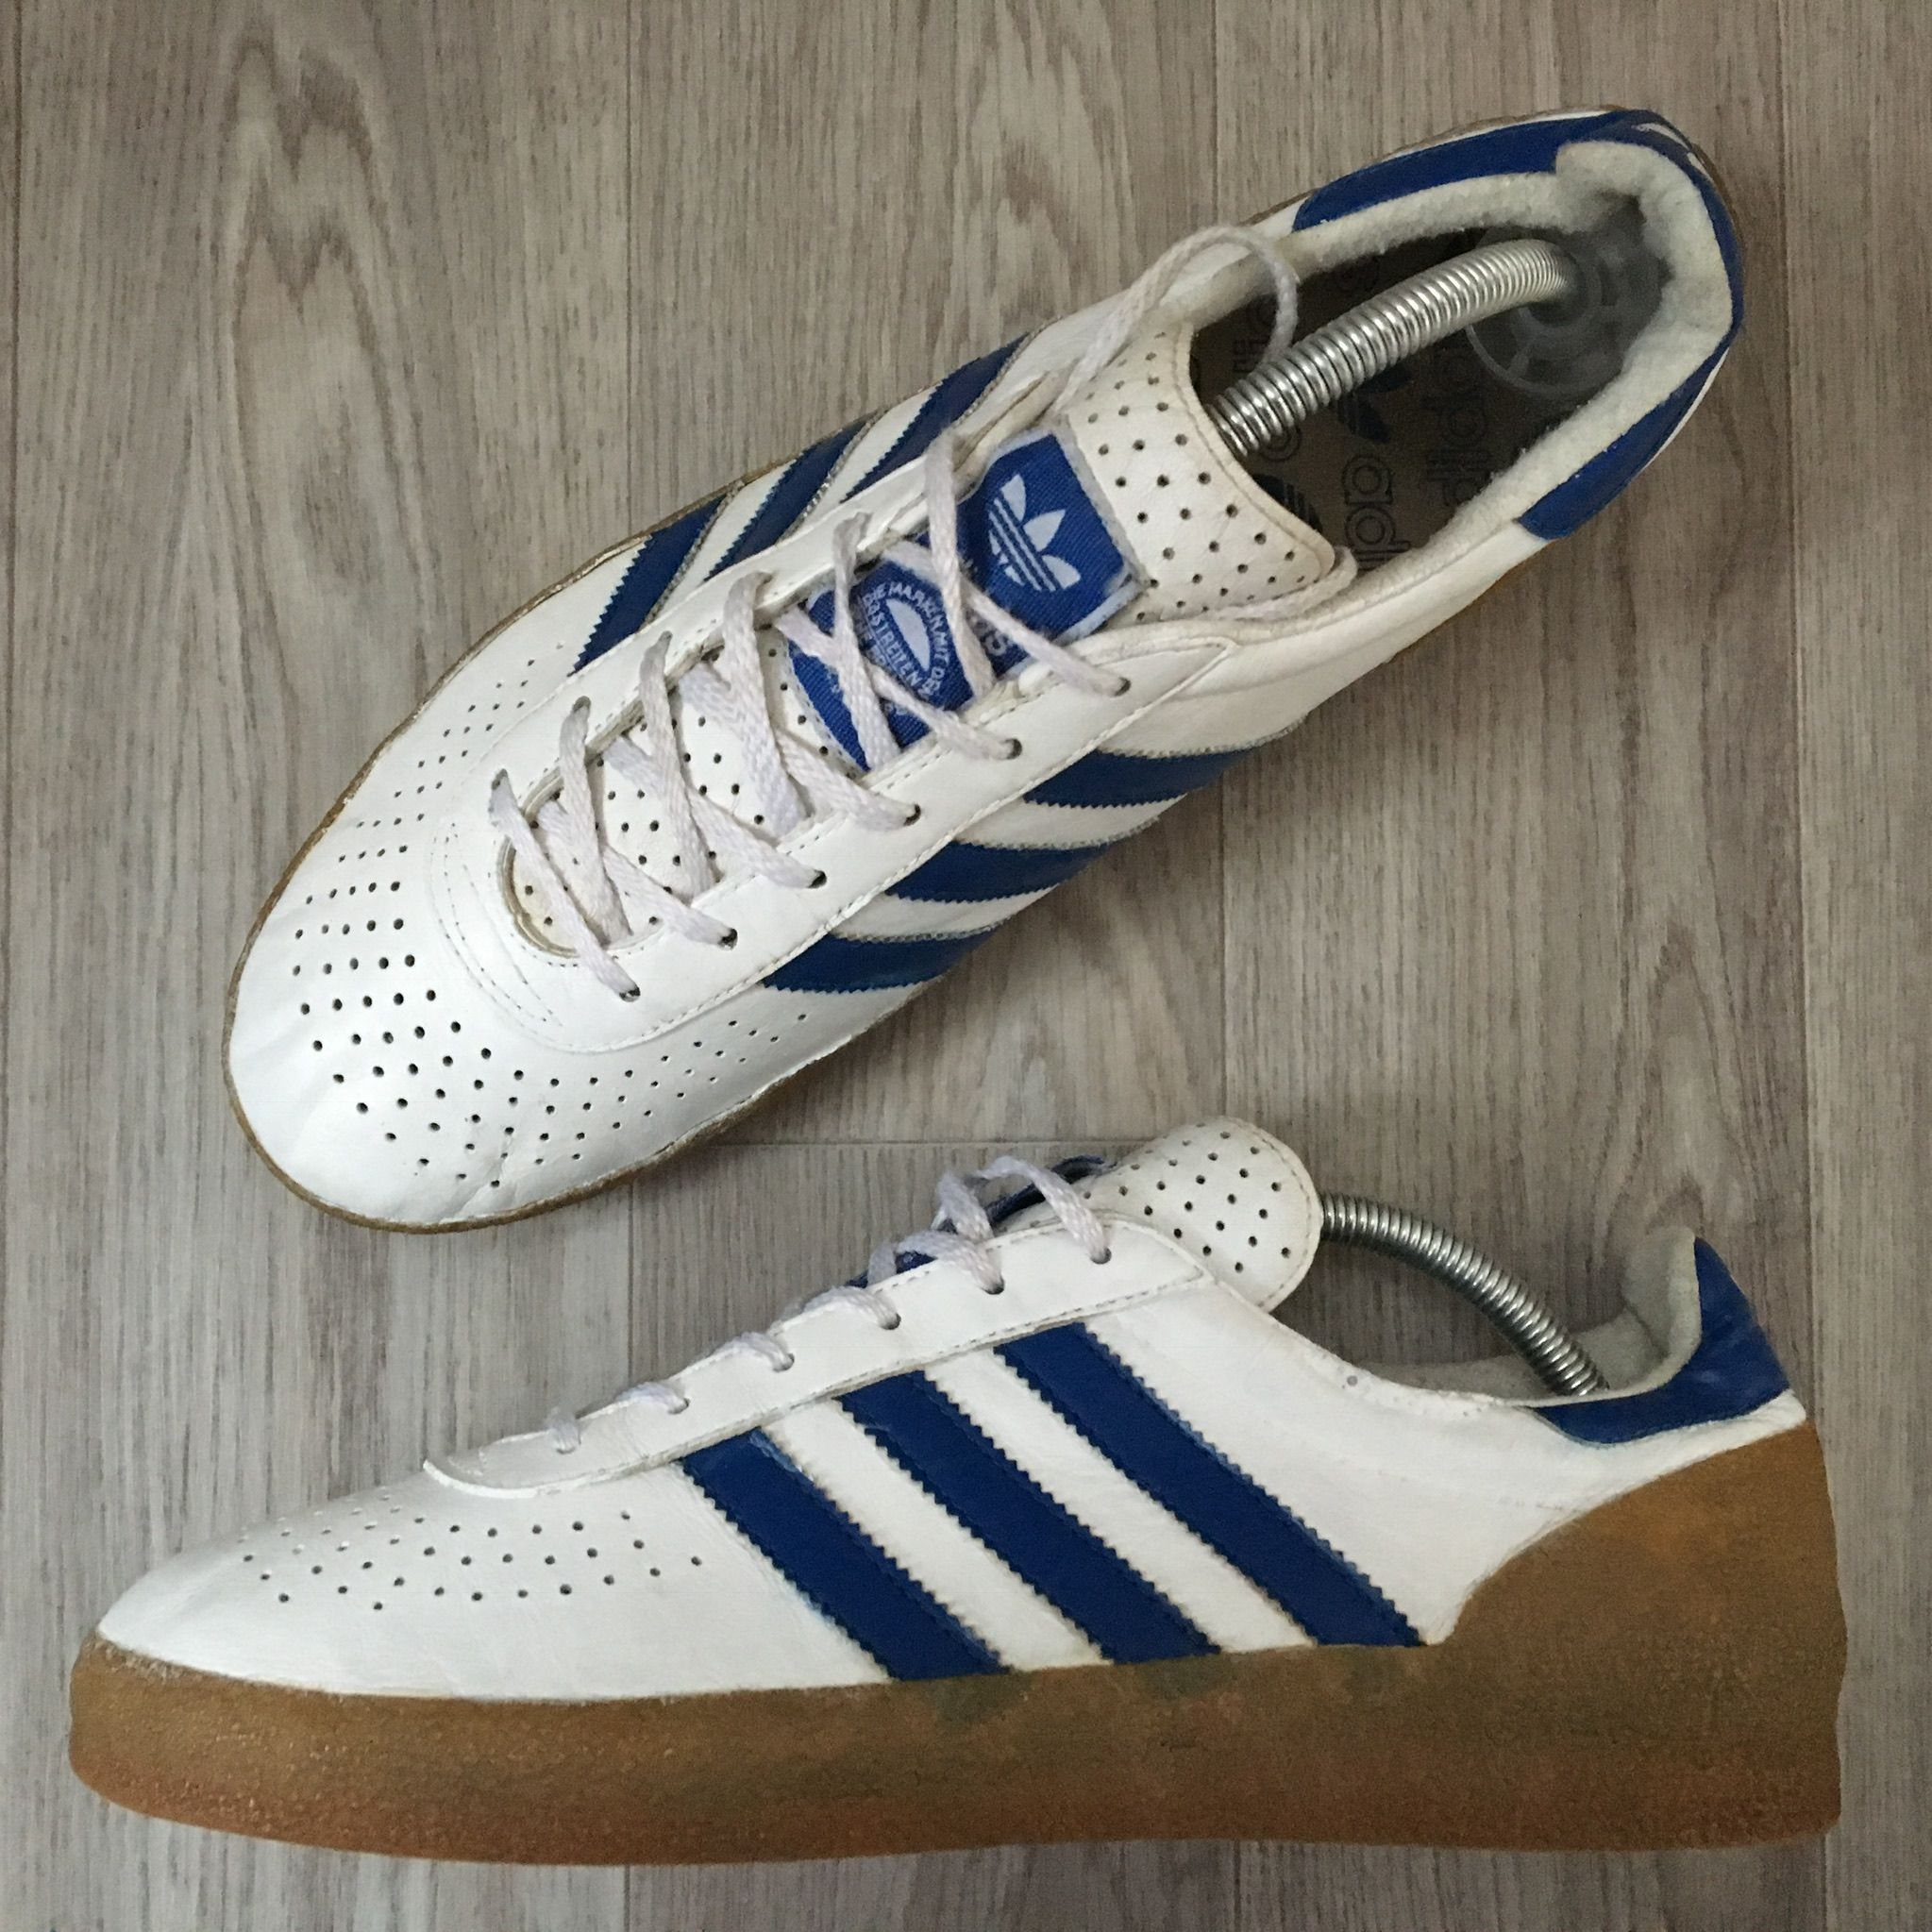 Adidas Montreal. Article: 382042. Year: 2002. Made in China. #